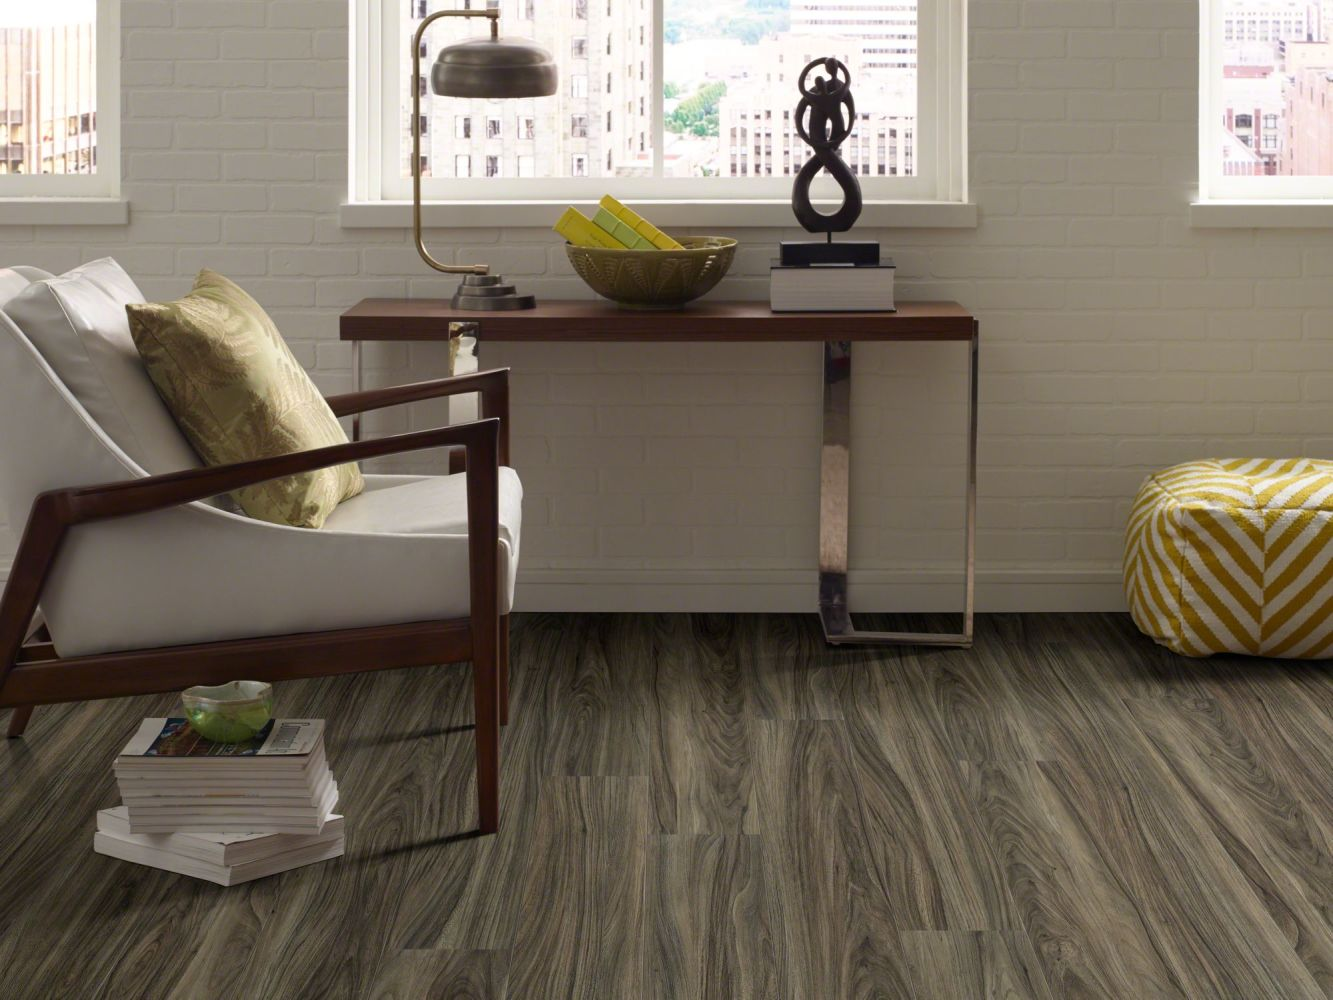 Shaw Floors Resilient Residential Legacy Plus Costa 00150_0458V